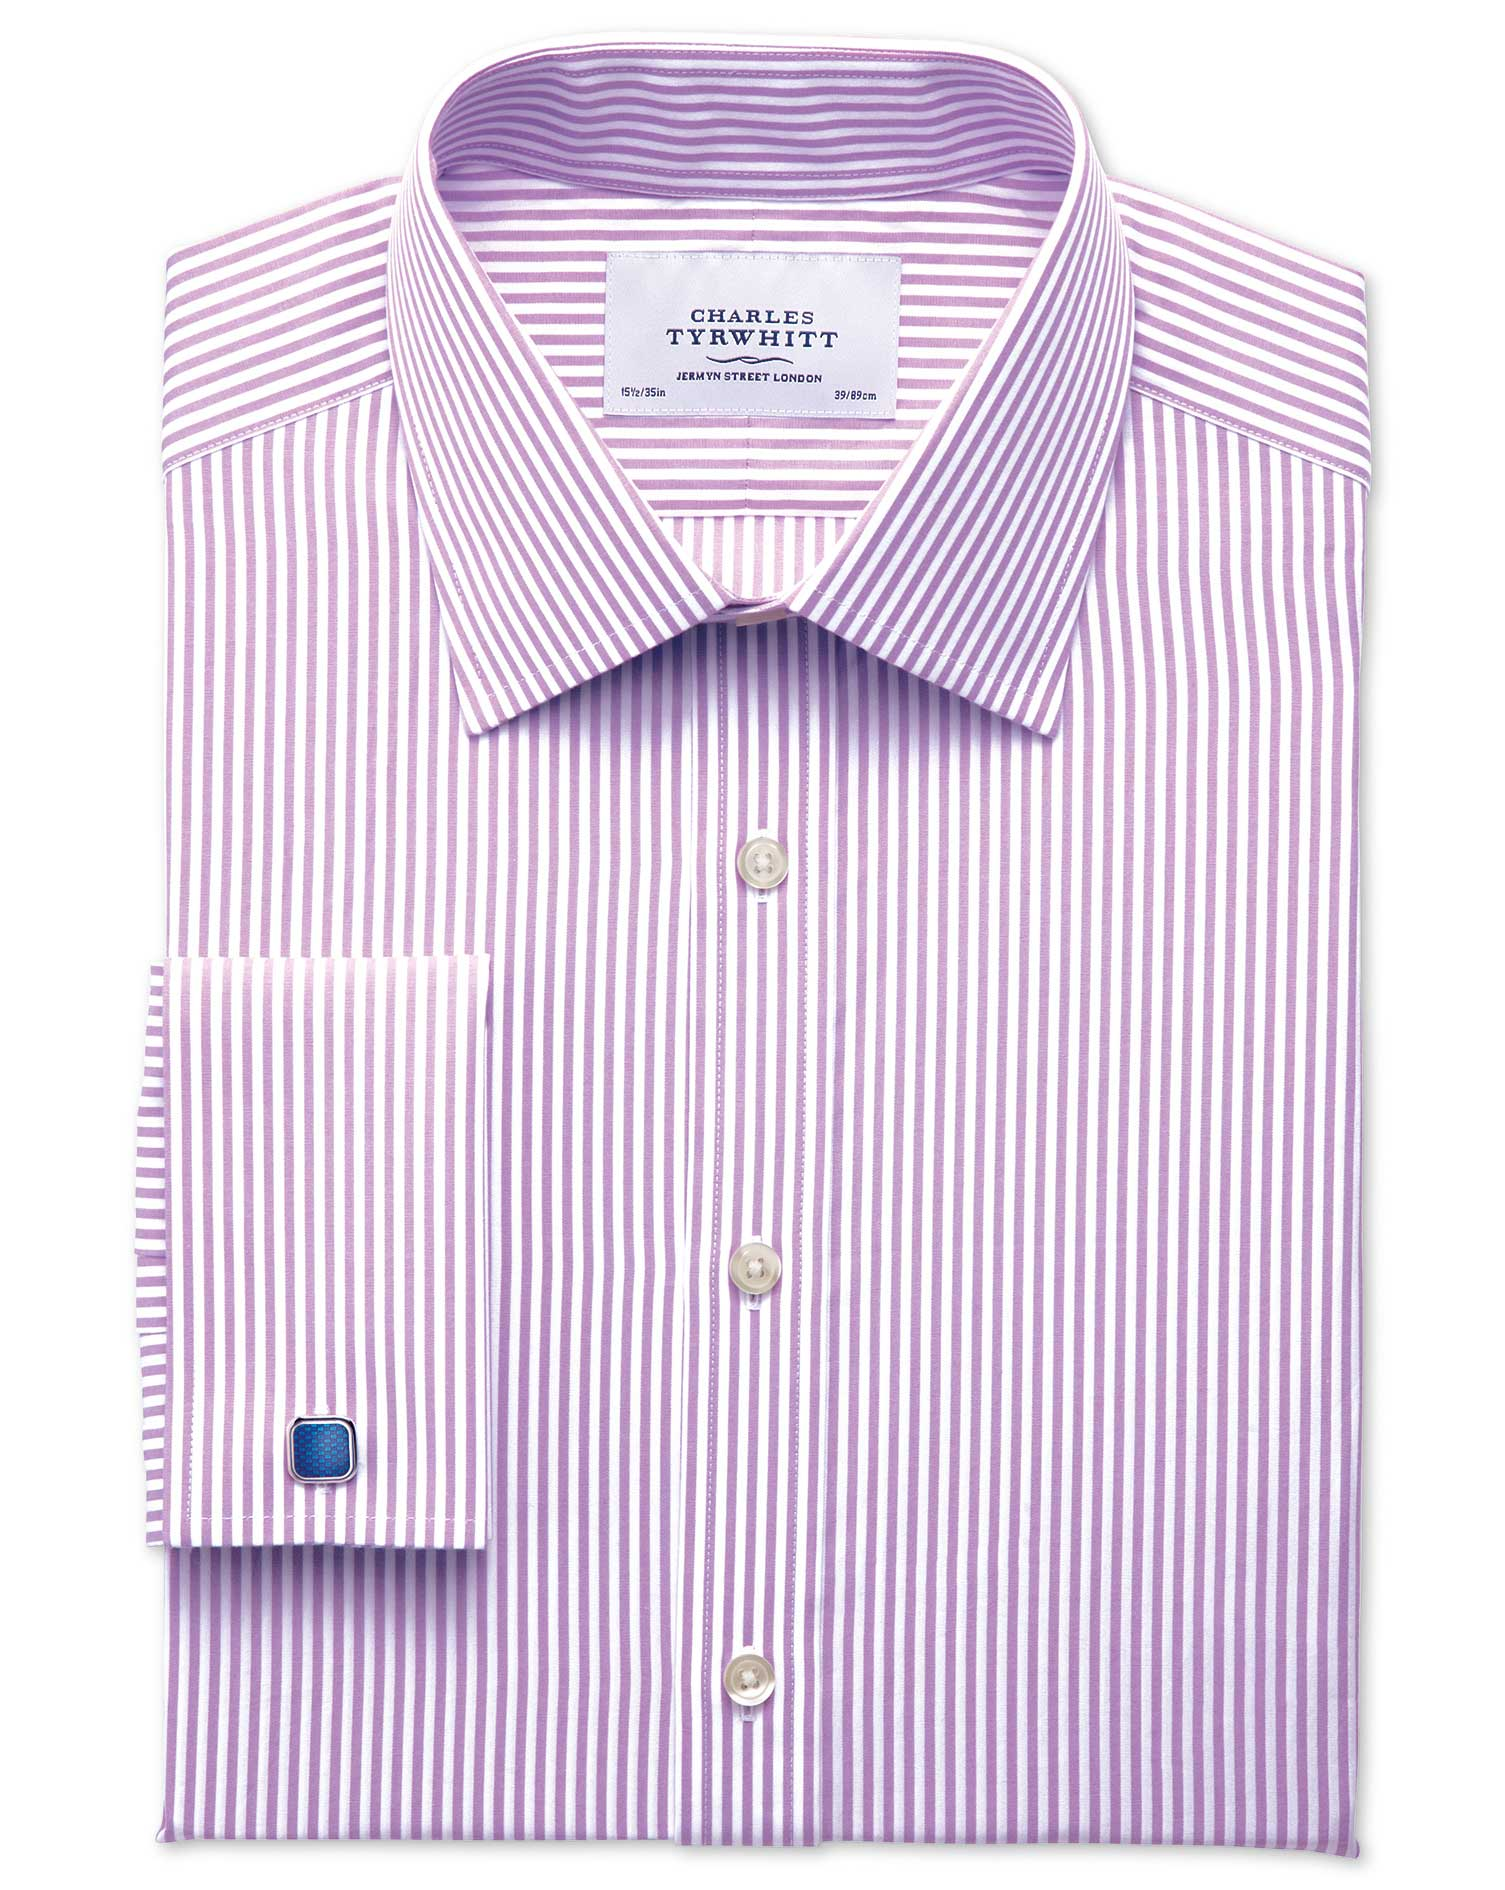 Slim Fit Bengal Stripe Lilac Cotton Formal Shirt Single Cuff Size 15/34 by Charles Tyrwhitt